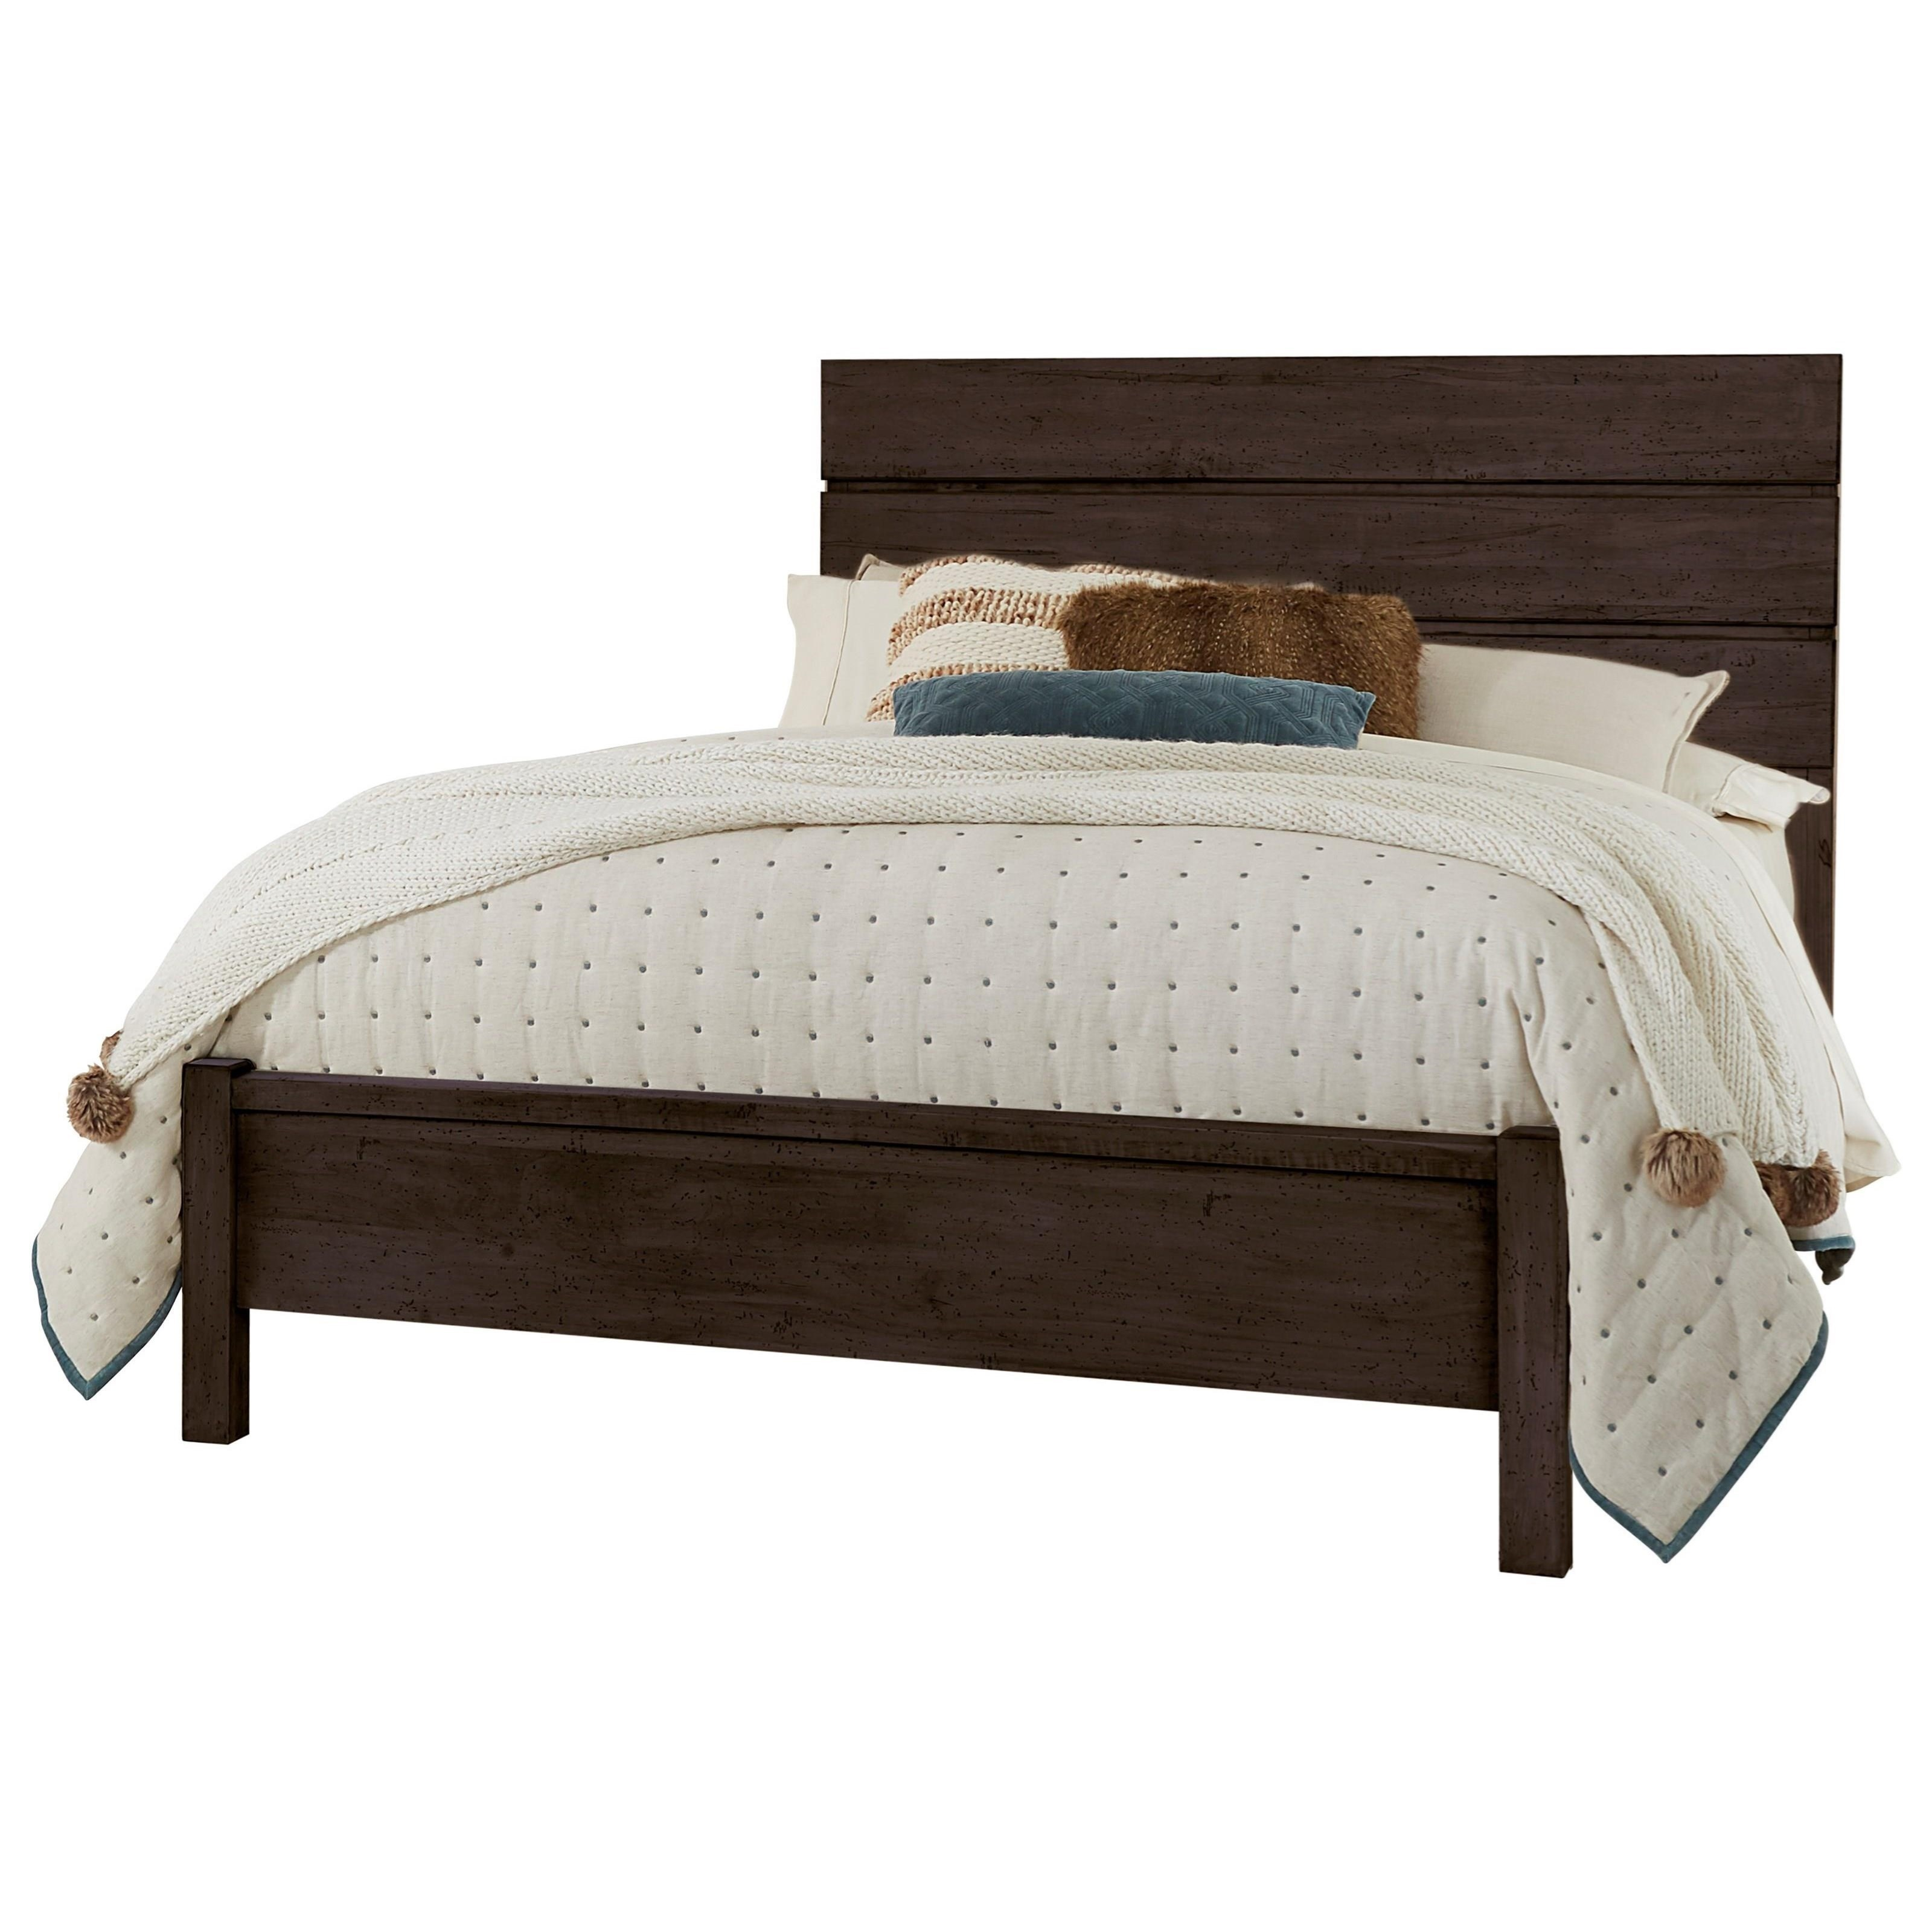 Touche California King Bed  by Centennial Solids at Rooms and Rest